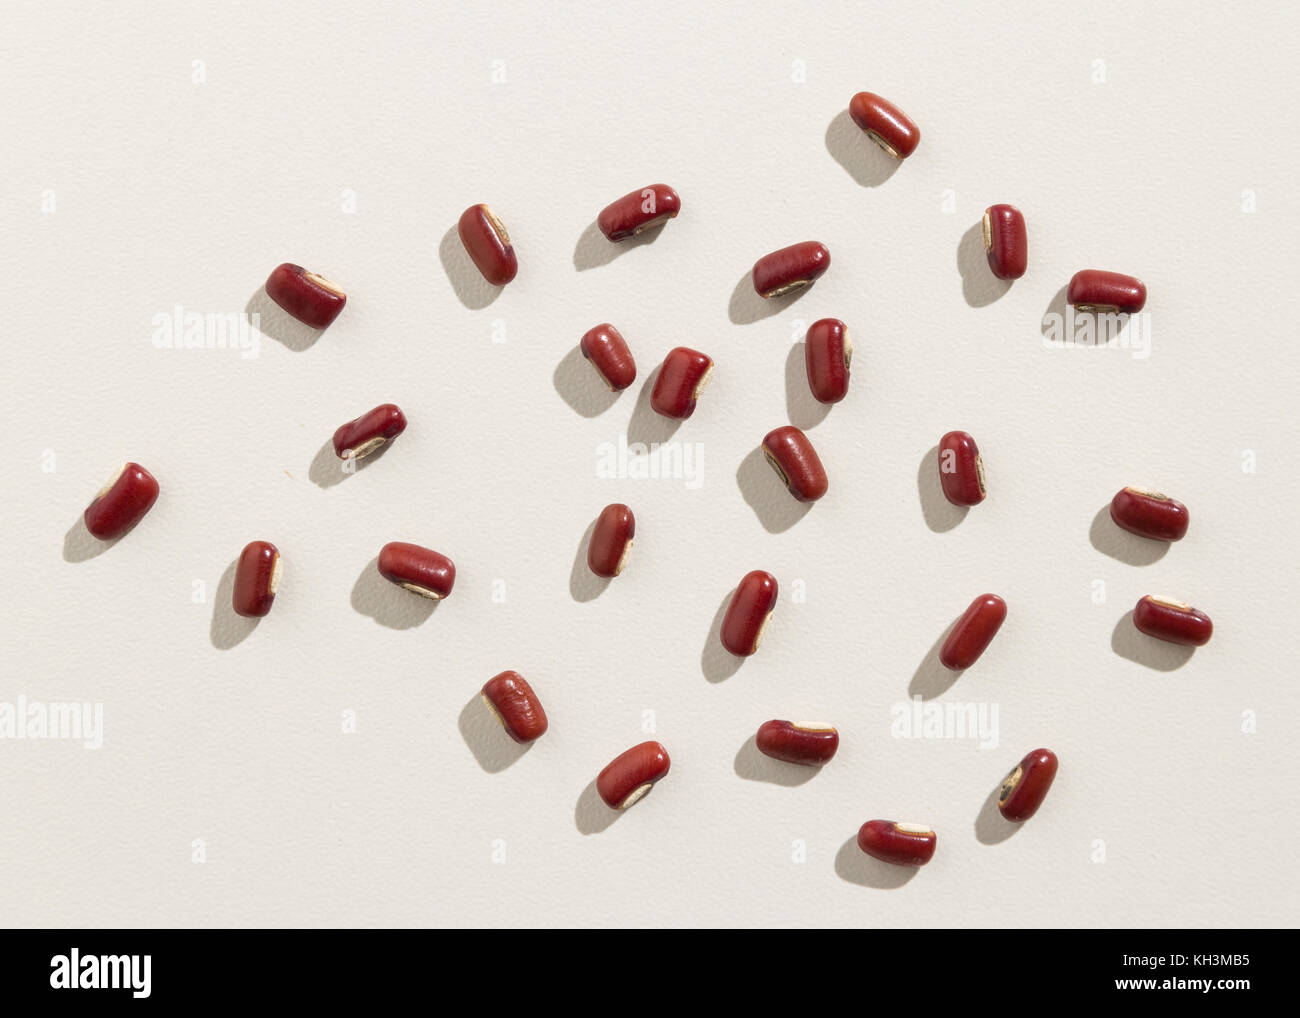 Vigna angularis is scientific name of Adzuki Bean legume. Also known as Azuki and Japanese Bean. Top view of scattered - Stock Image